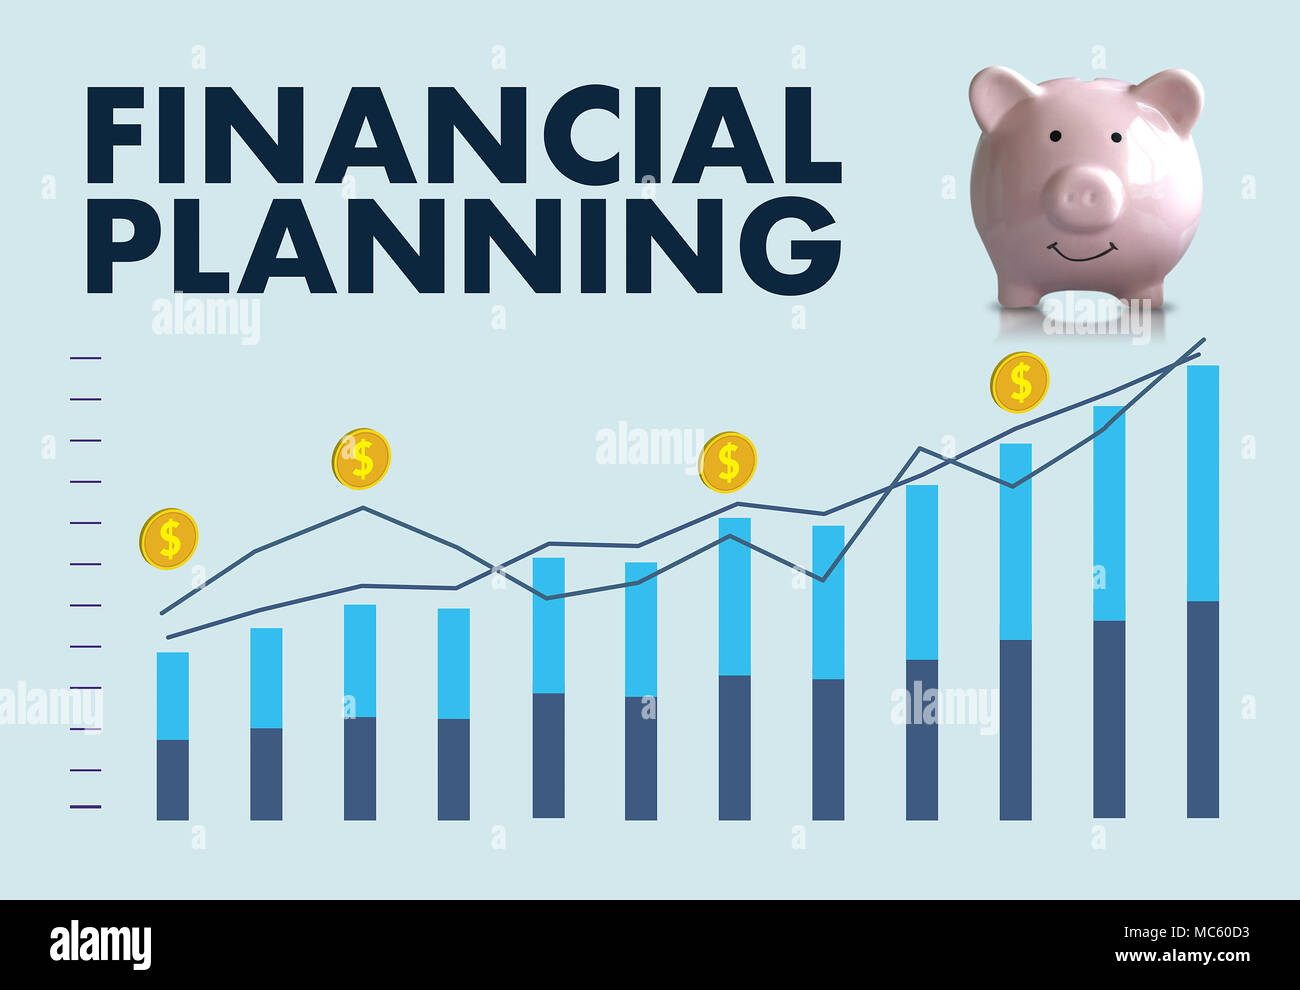 financial planning retirement planning woman and man at retirement